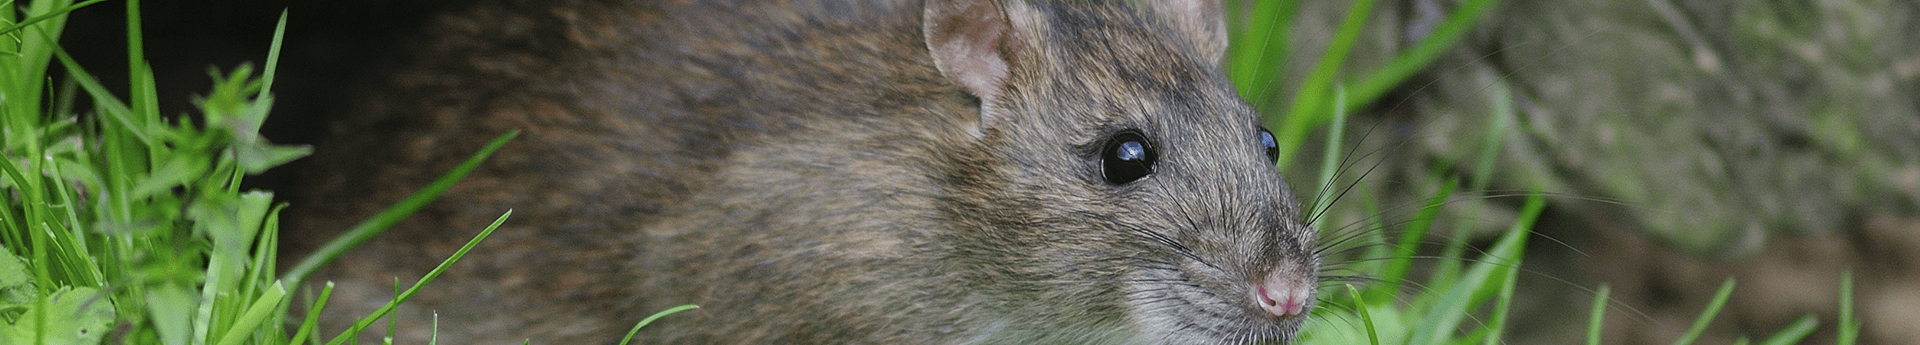 rat outside oklahoma home in the grass